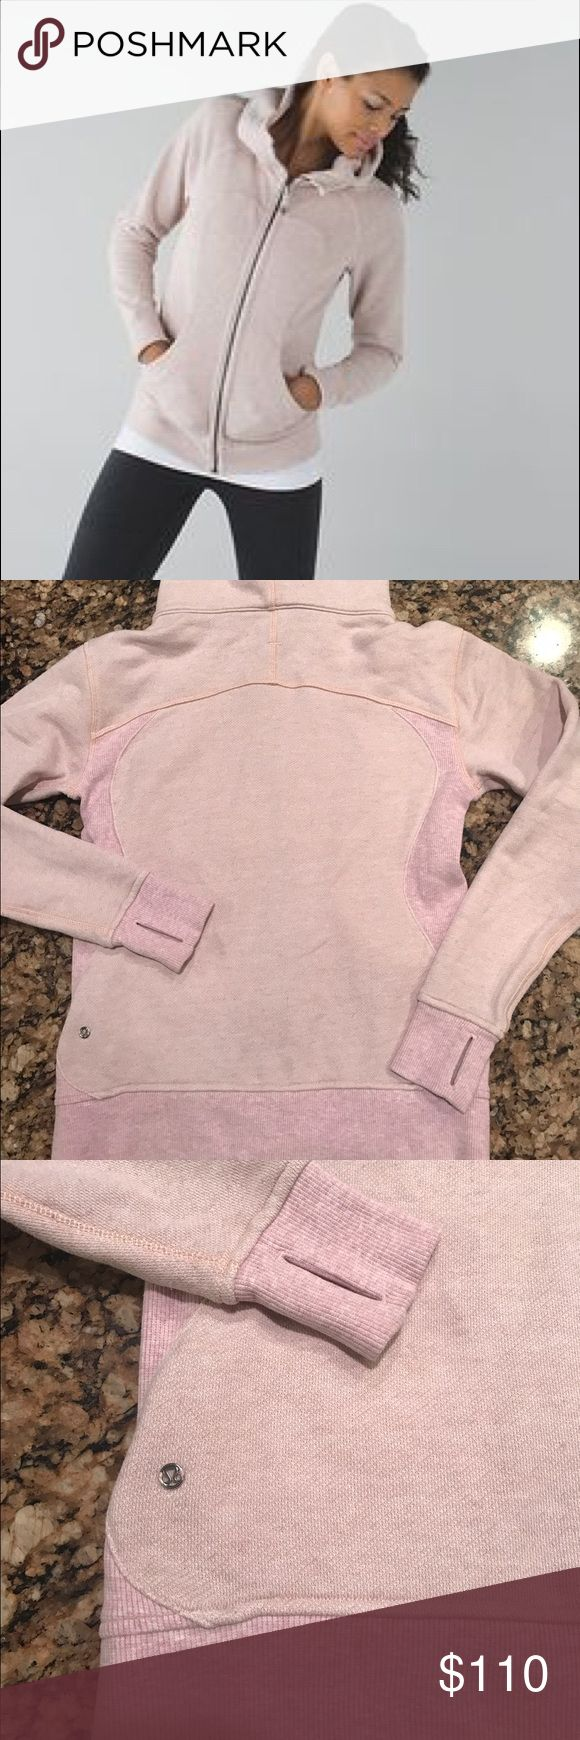 Lululemon hoodie sz 6 Excellent condition pretty pink color similar to bark berry or butter pink. lululemon athletica Tops Sweatshirts & Hoodies